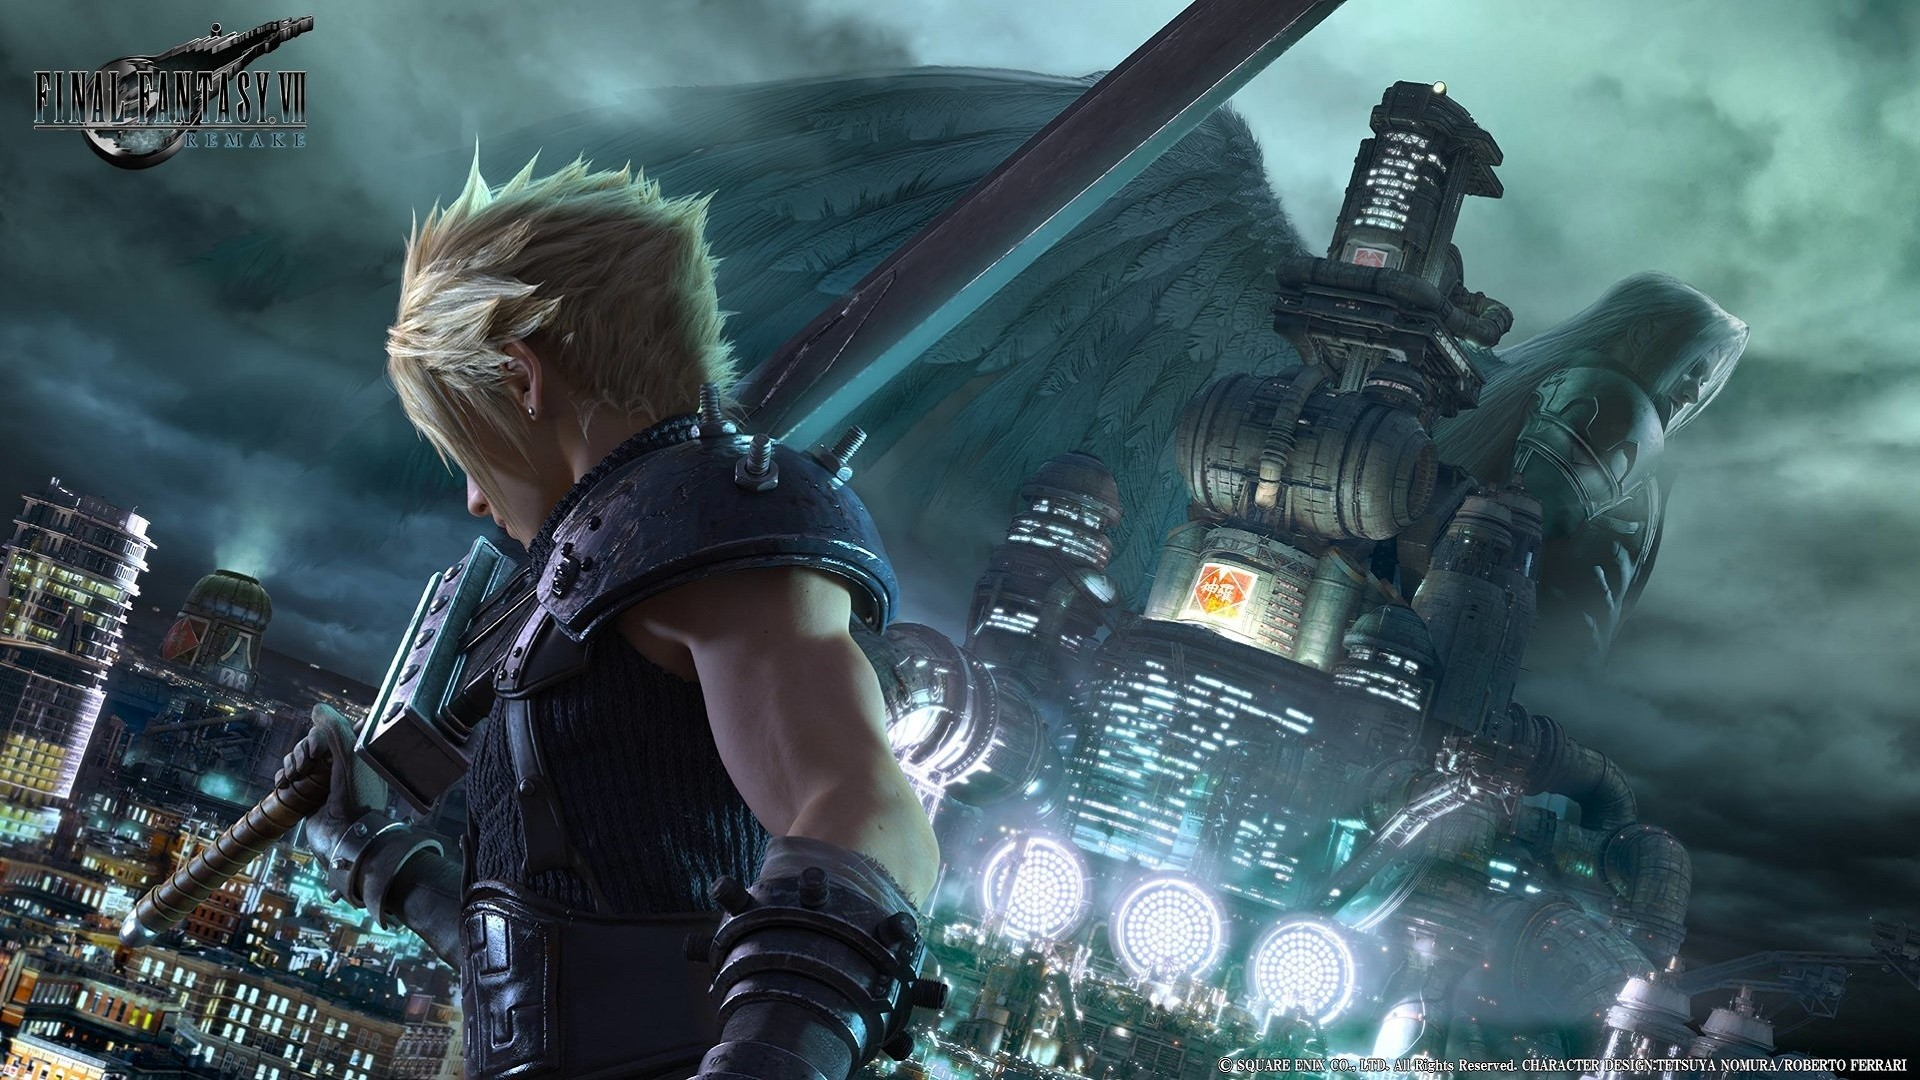 1920x1080 Final Fantasy VII Desktop Wallpaper ...